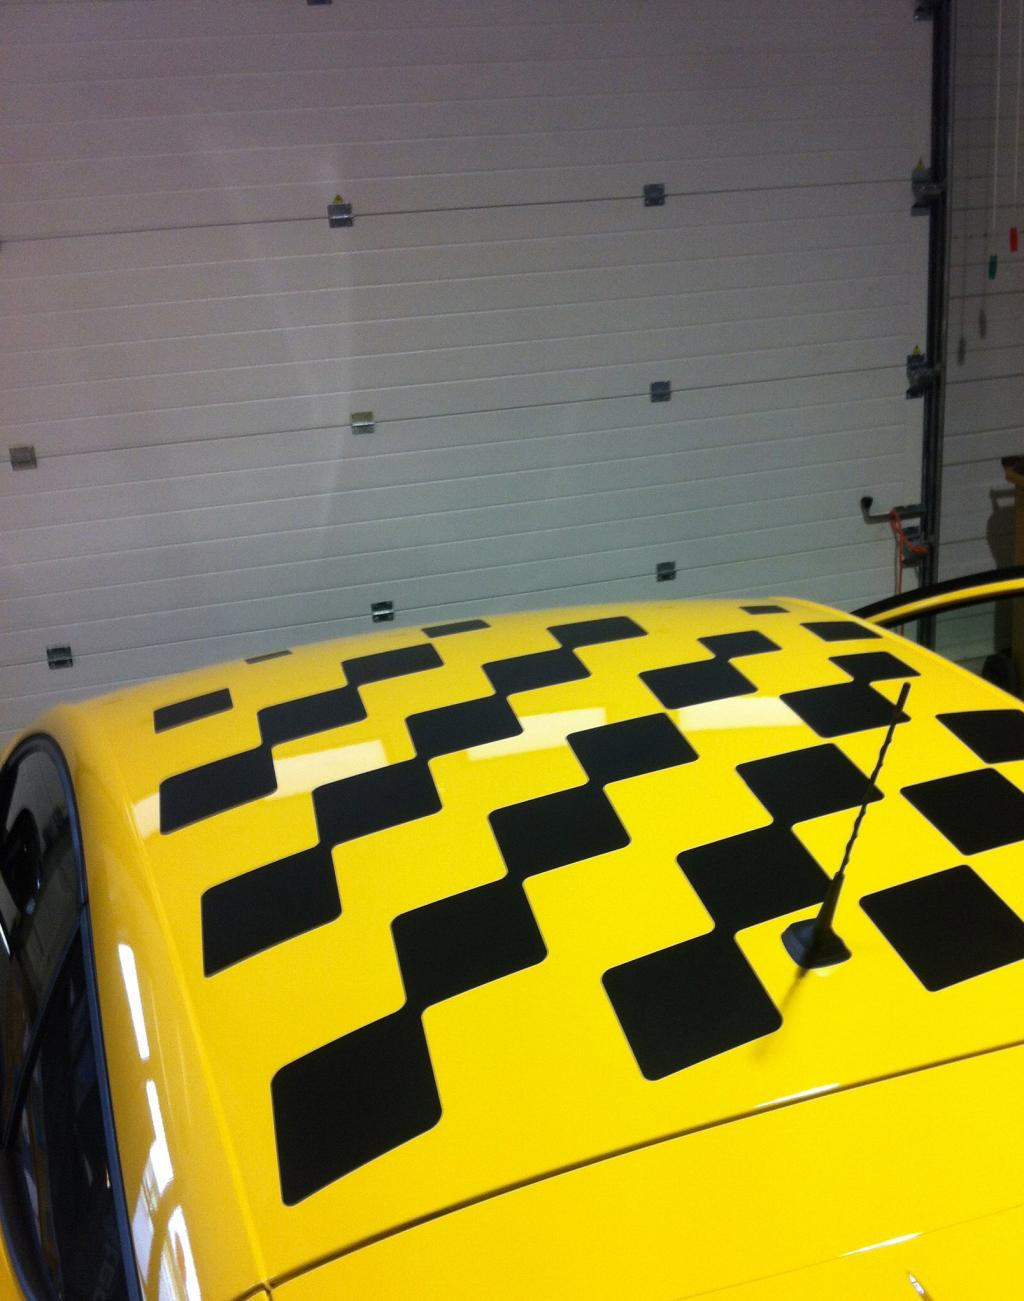 Vends Sticker Renault Replica - Stripping - et autres modeles  - Page 2 Img_2840-3f79f88